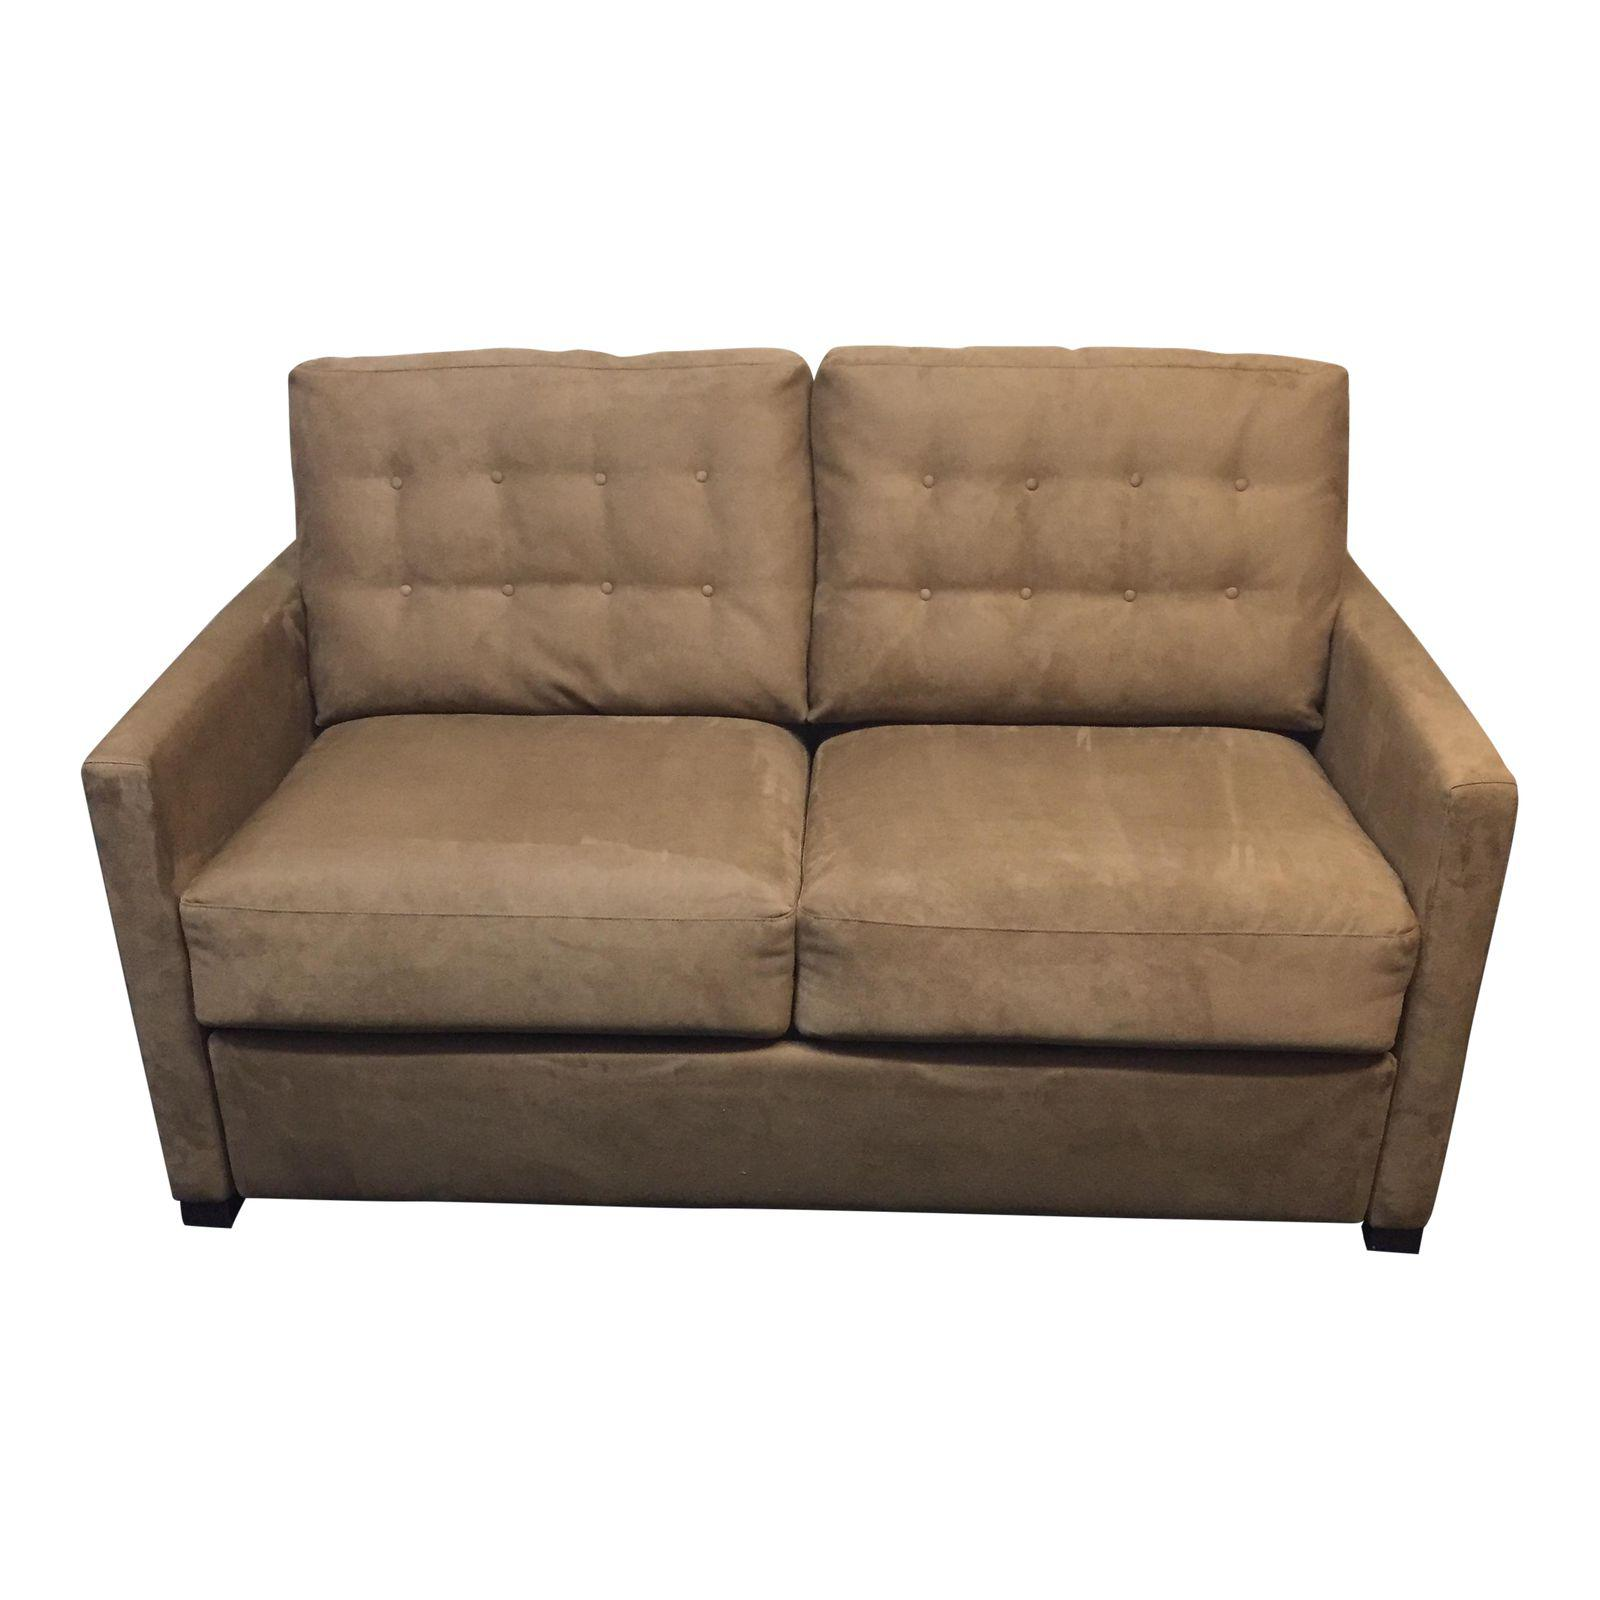 American Leather Full Size Sue Comfort Sleeper Sofa Original Price 2 791 16